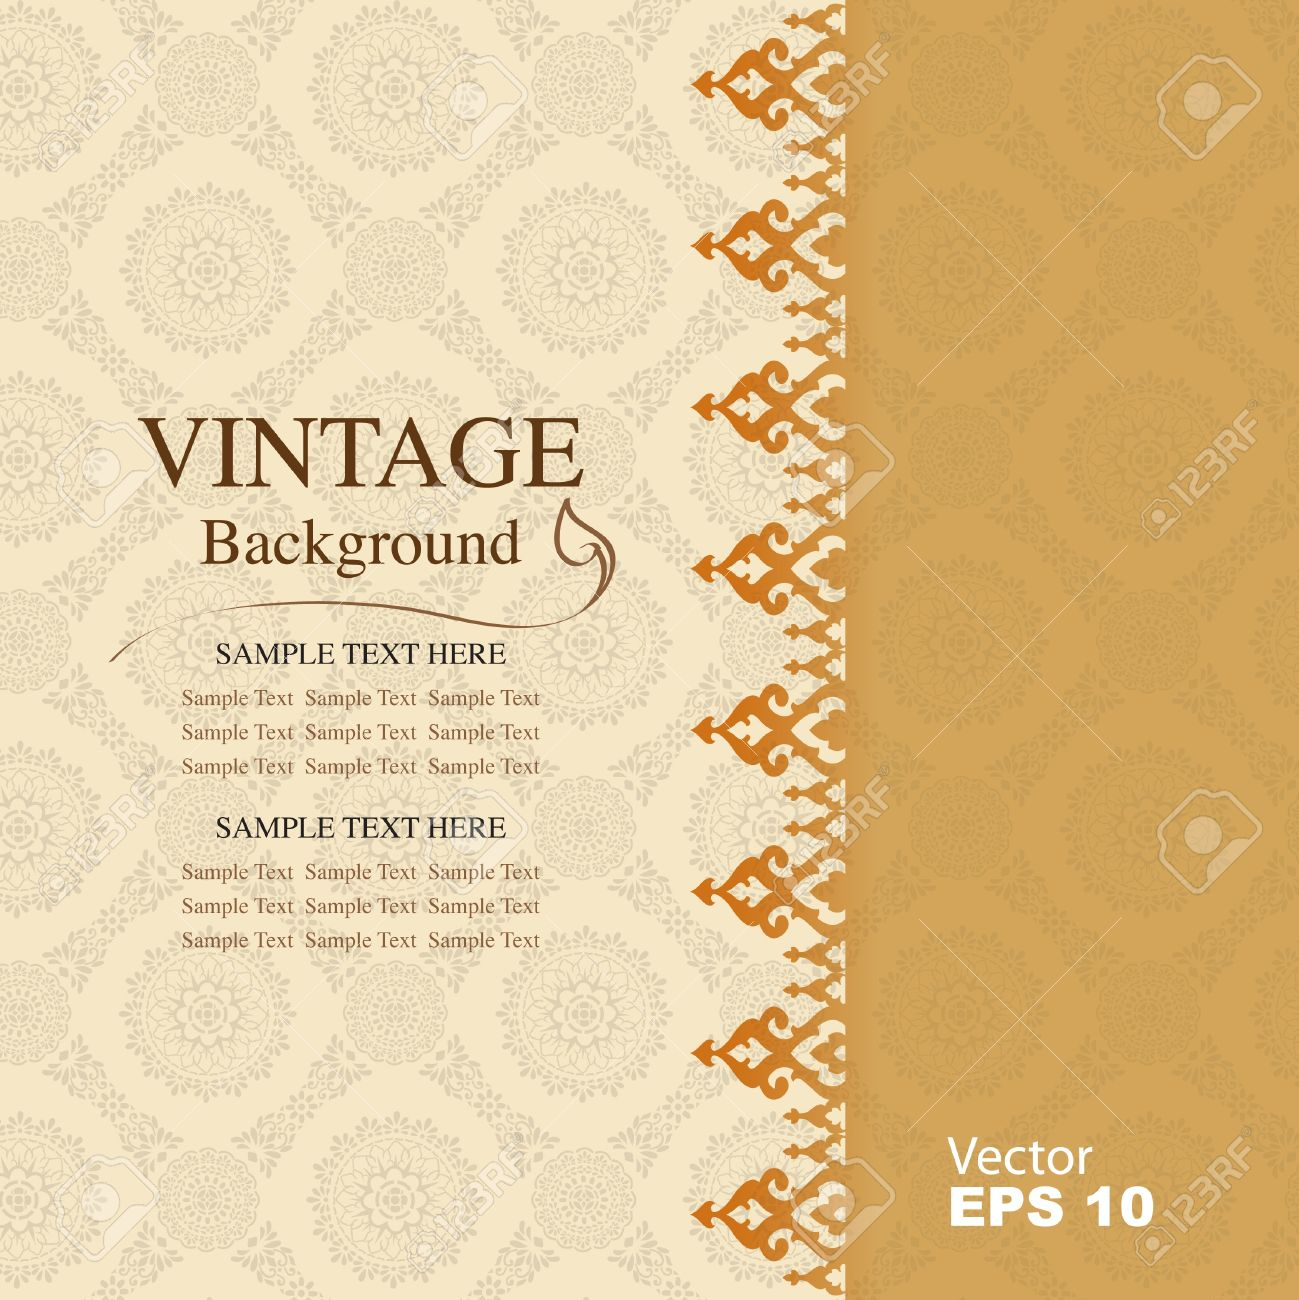 Vintage background, antique greeting card Stock Vector - 20361296